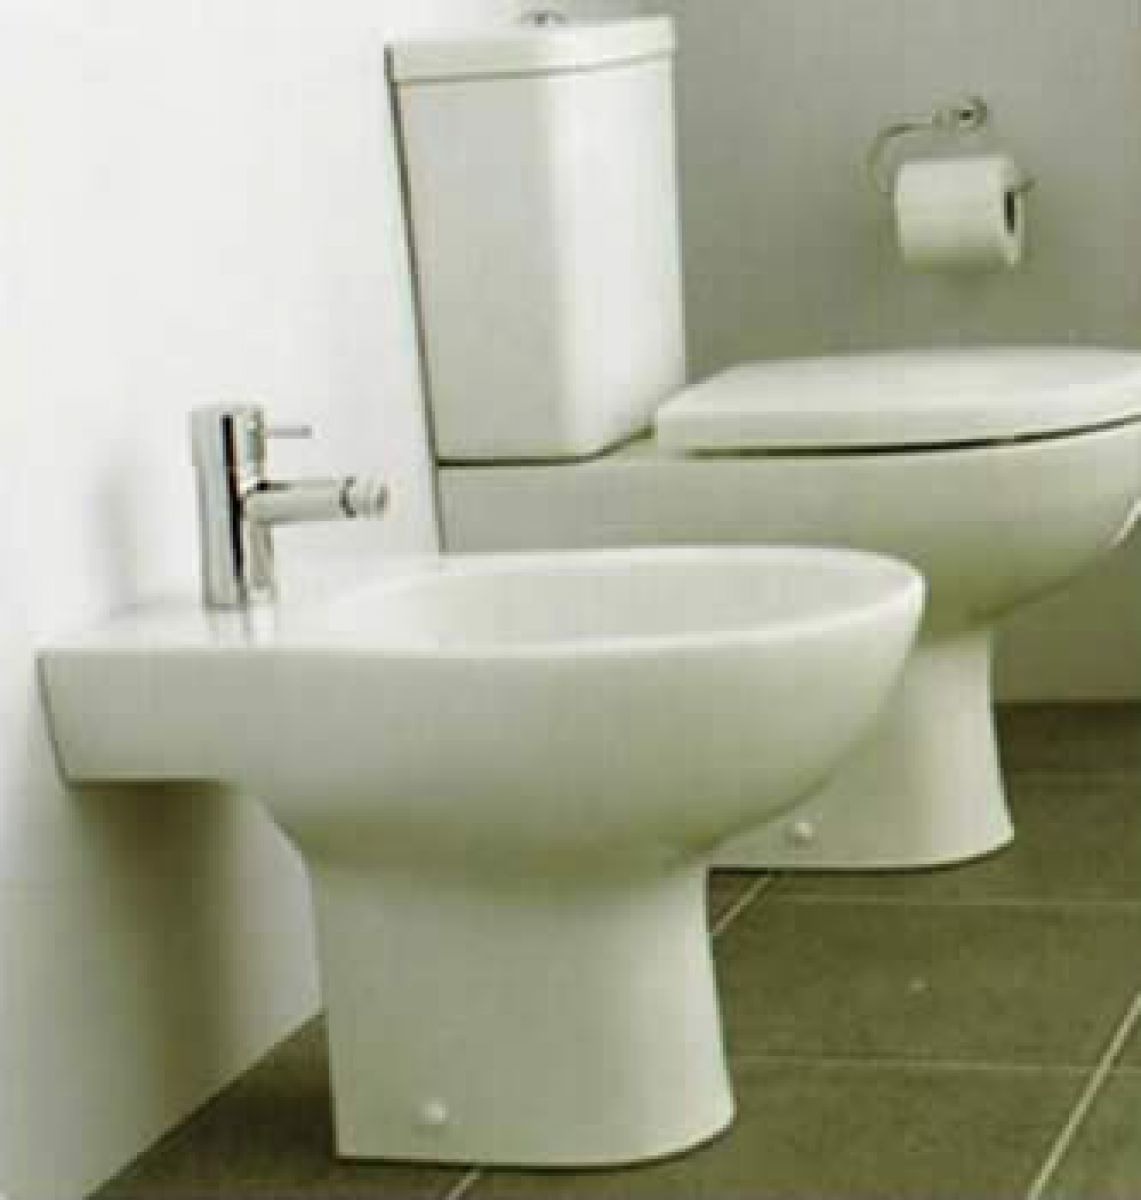 Ideal standard create square floor standing bidet uk for Ideal standard liuto bidet